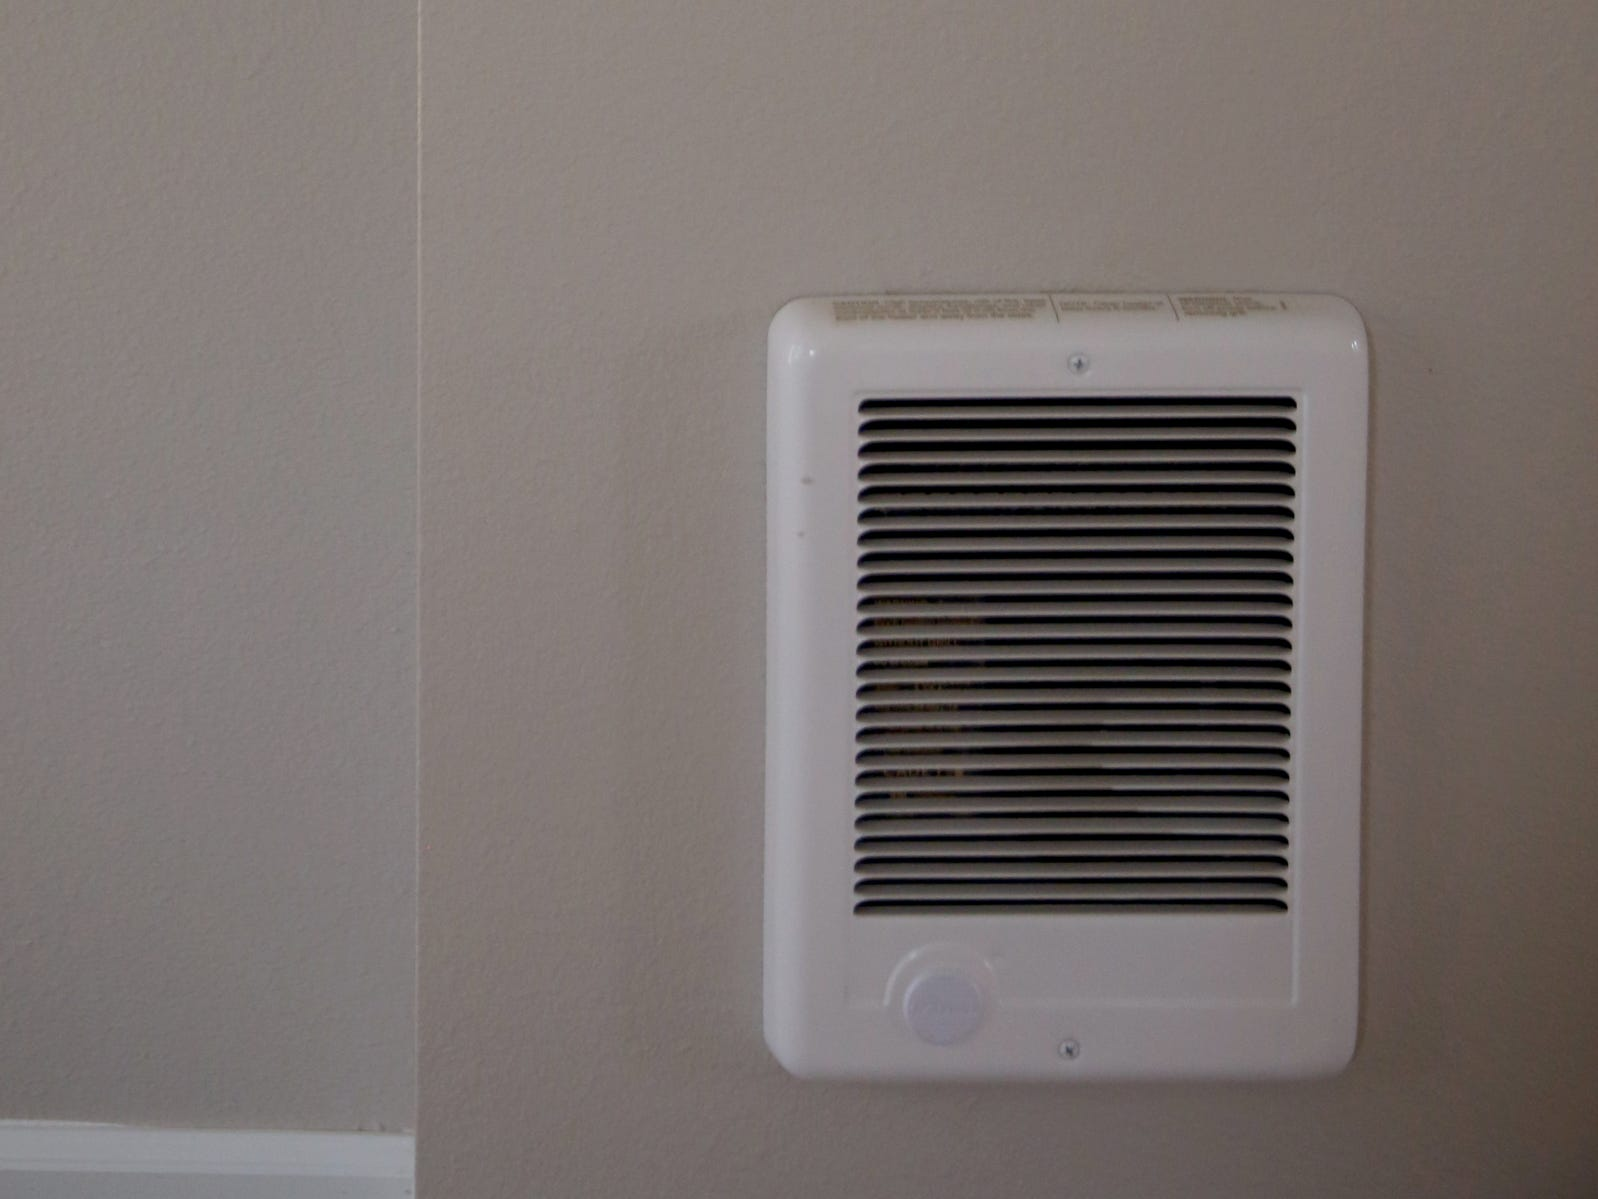 A room heater with a thermostat at the Cornerstone Apartments in Salem on Wednesday, Jan. 16, 2019. The state is looking to reduce the energy burden for low-income Oregonians, including tenants at Cornerstone, who must live at or less than 60 percent of the area's median household income.